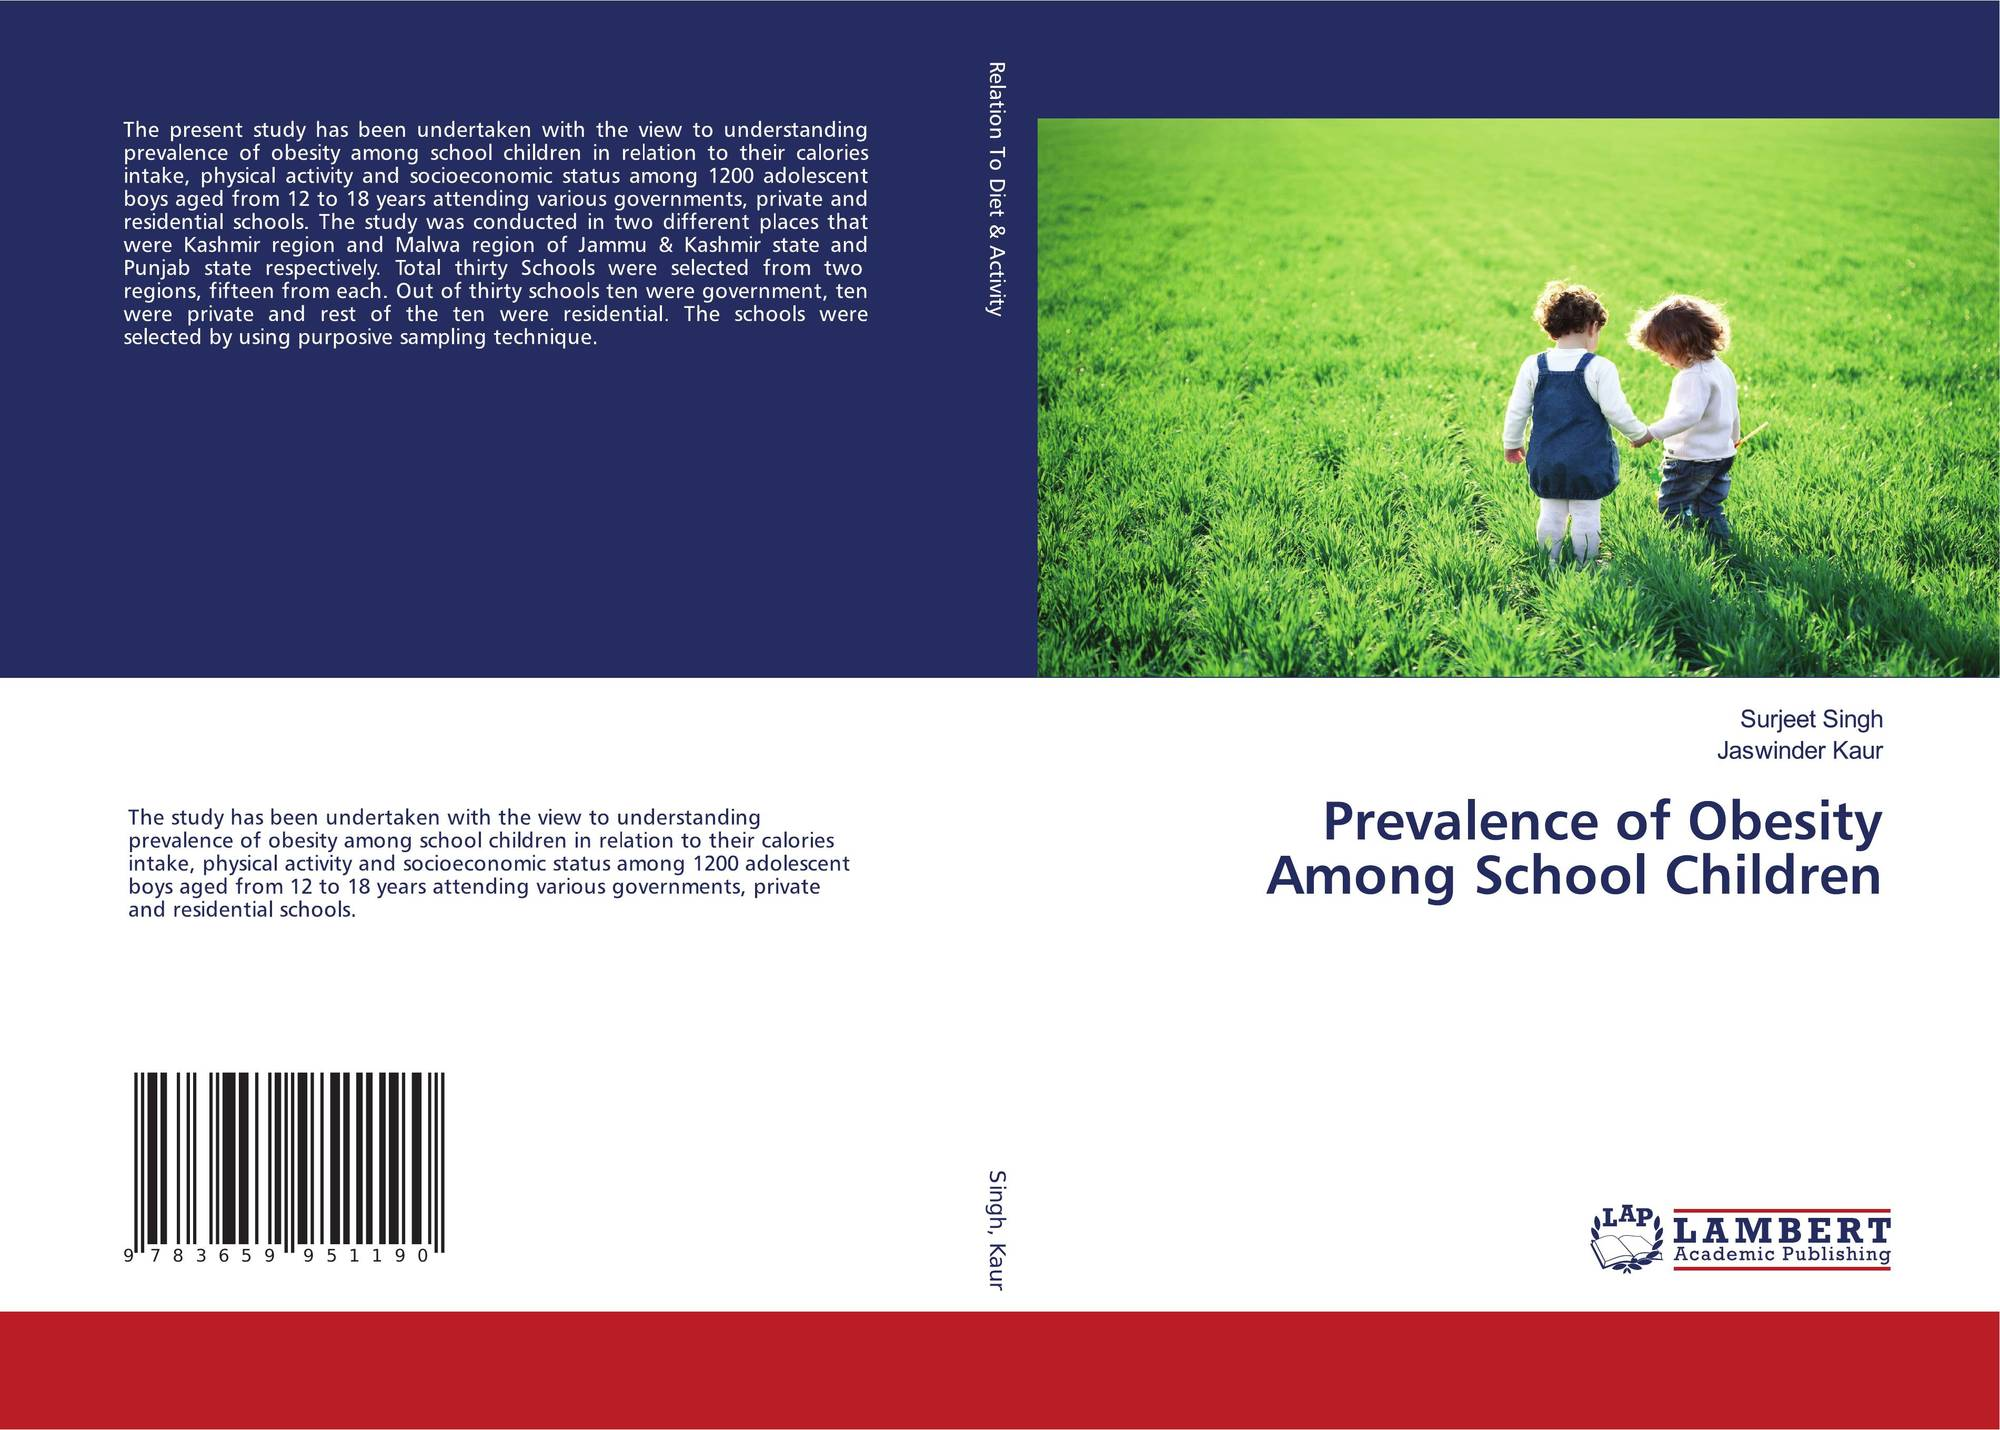 a study of the prevalence of obesity among children